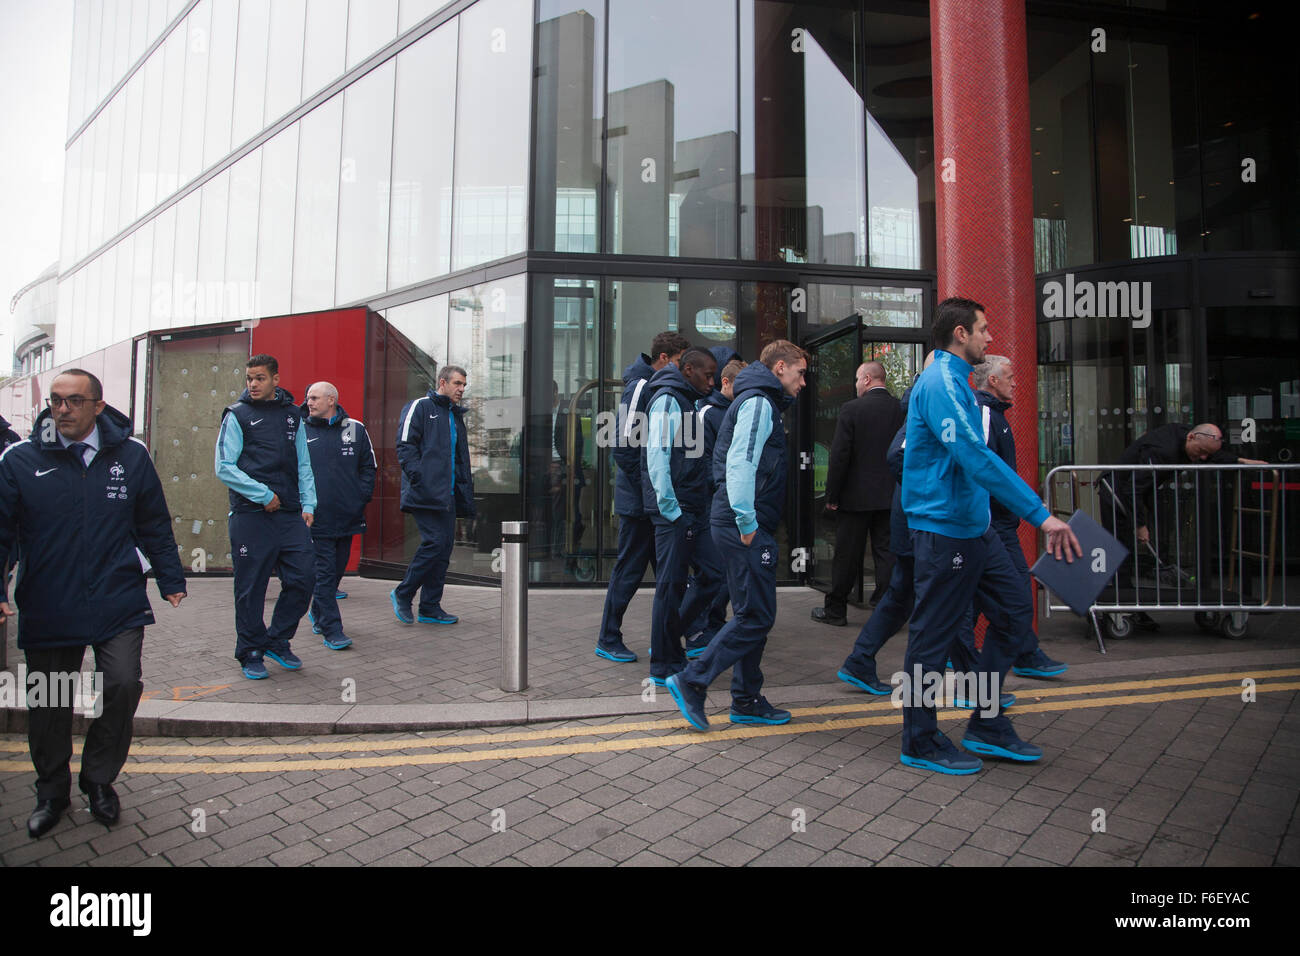 Wembley, London, UK. 17th November, 2015. Members of the French national team stroll around Wembley ahead of the - Stock Image